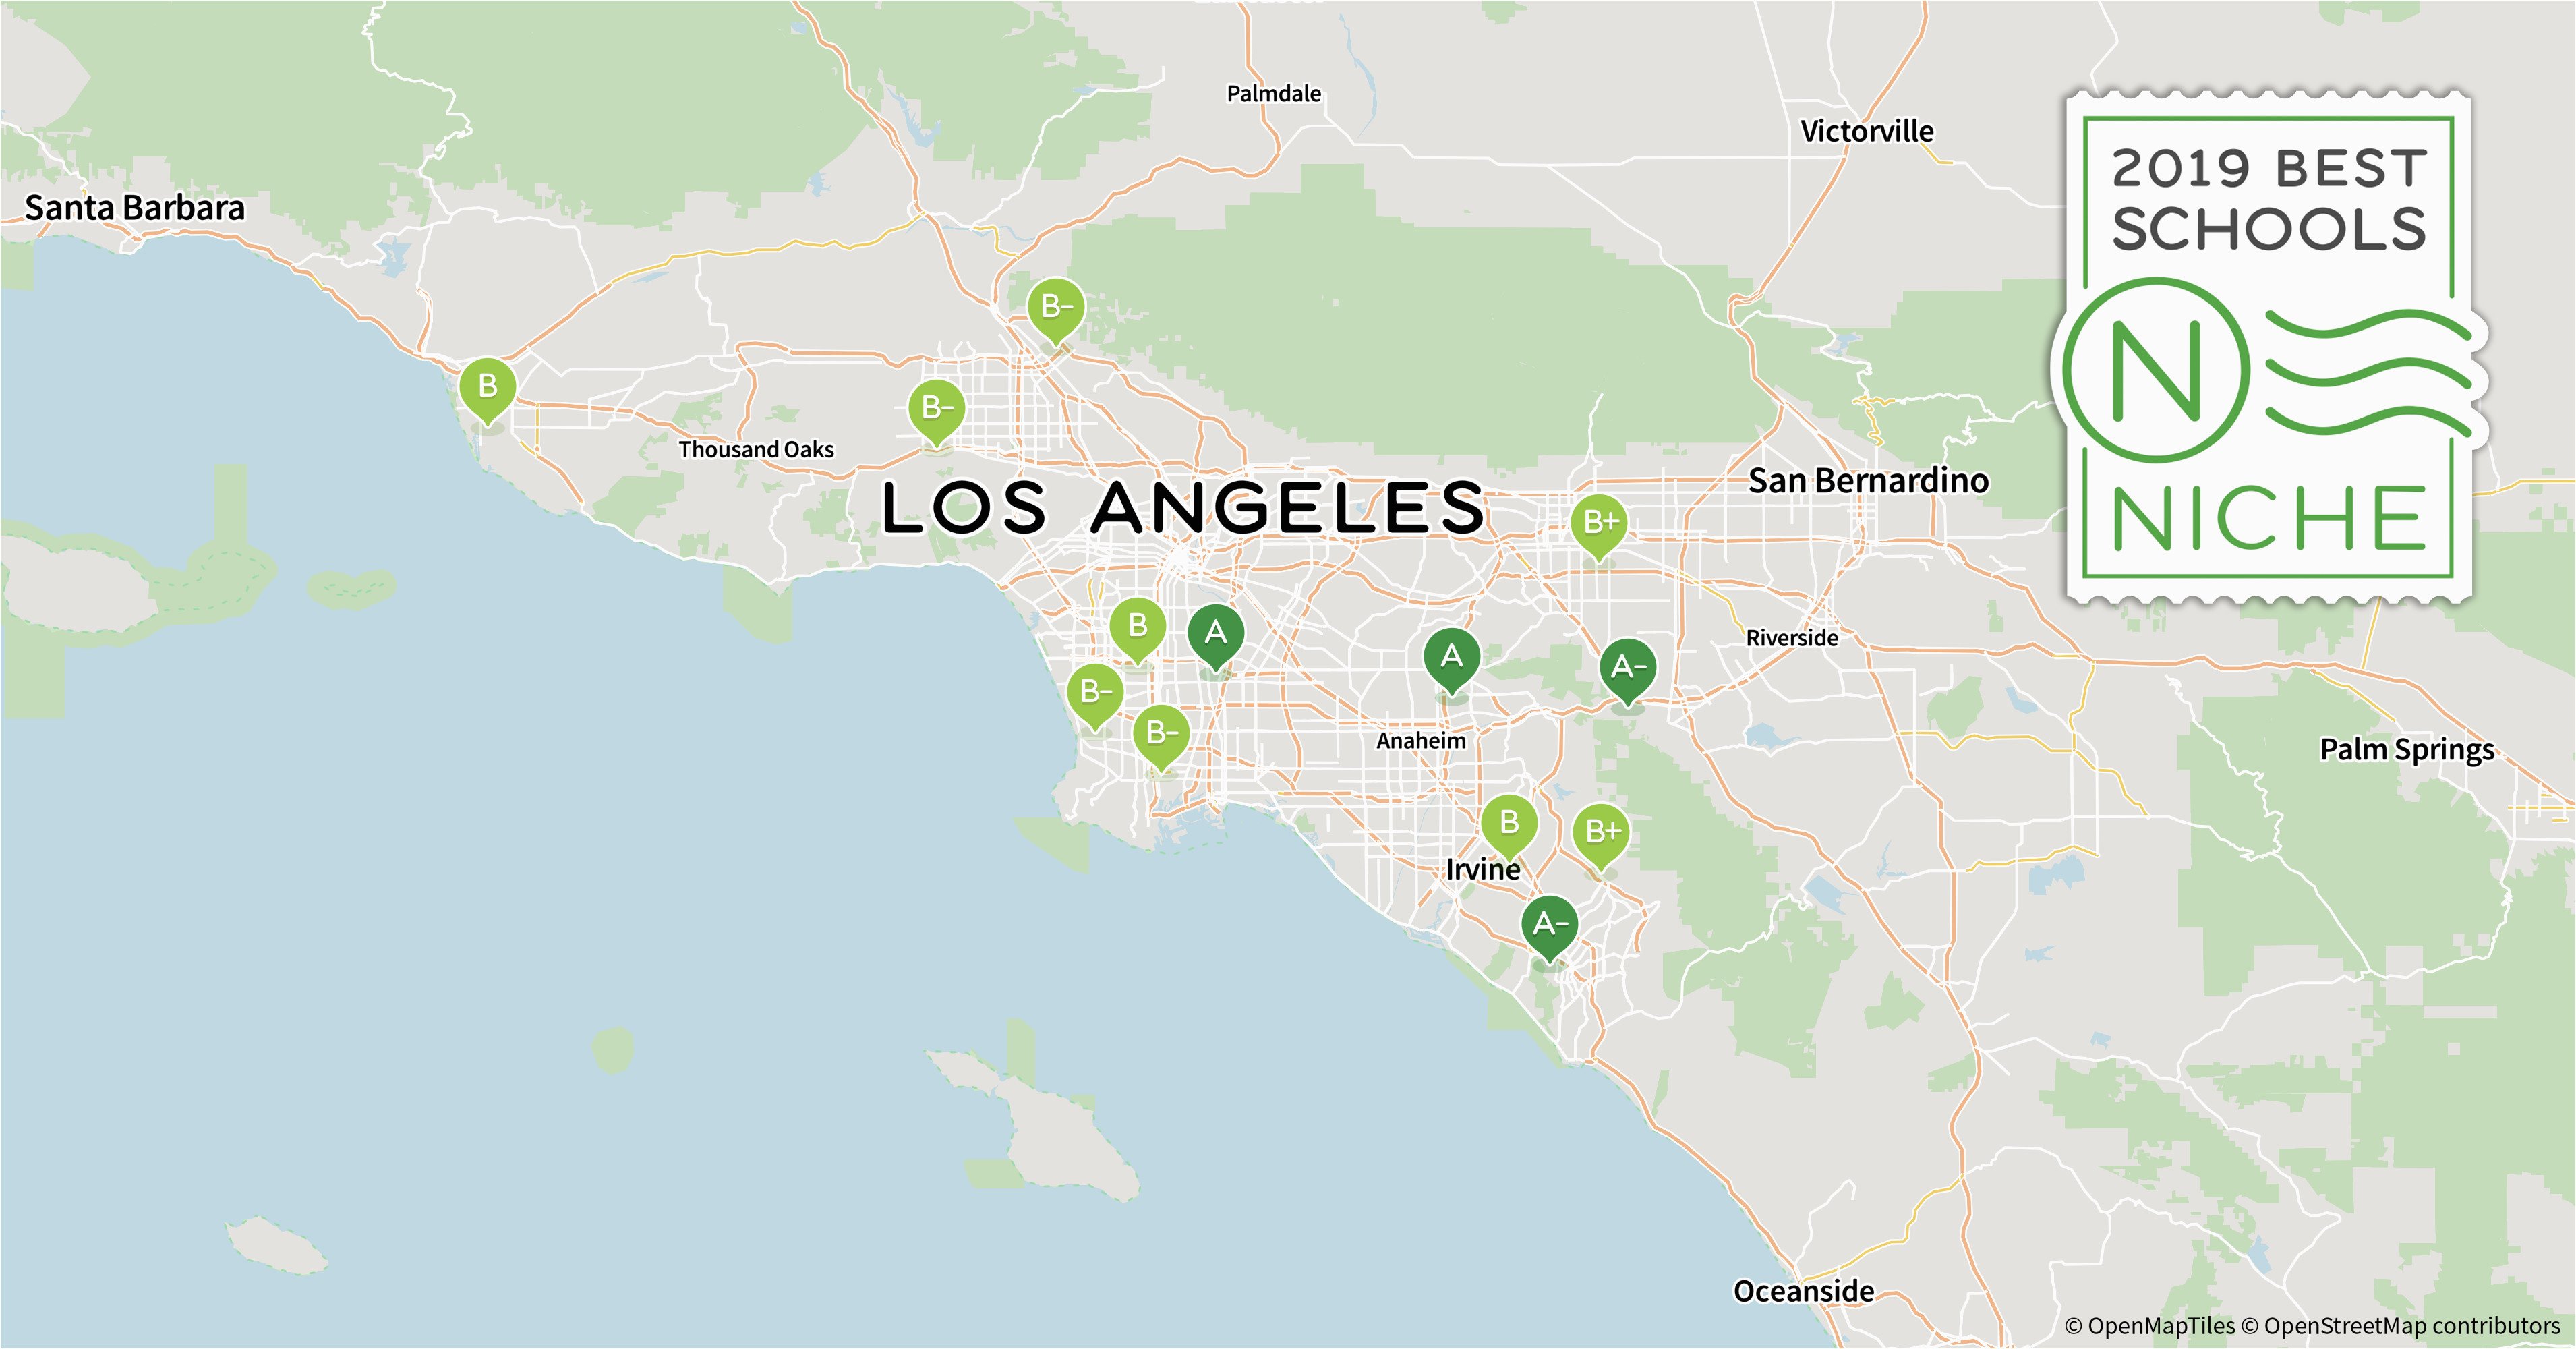 Law Schools In California Map 2019 Best Private High Schools